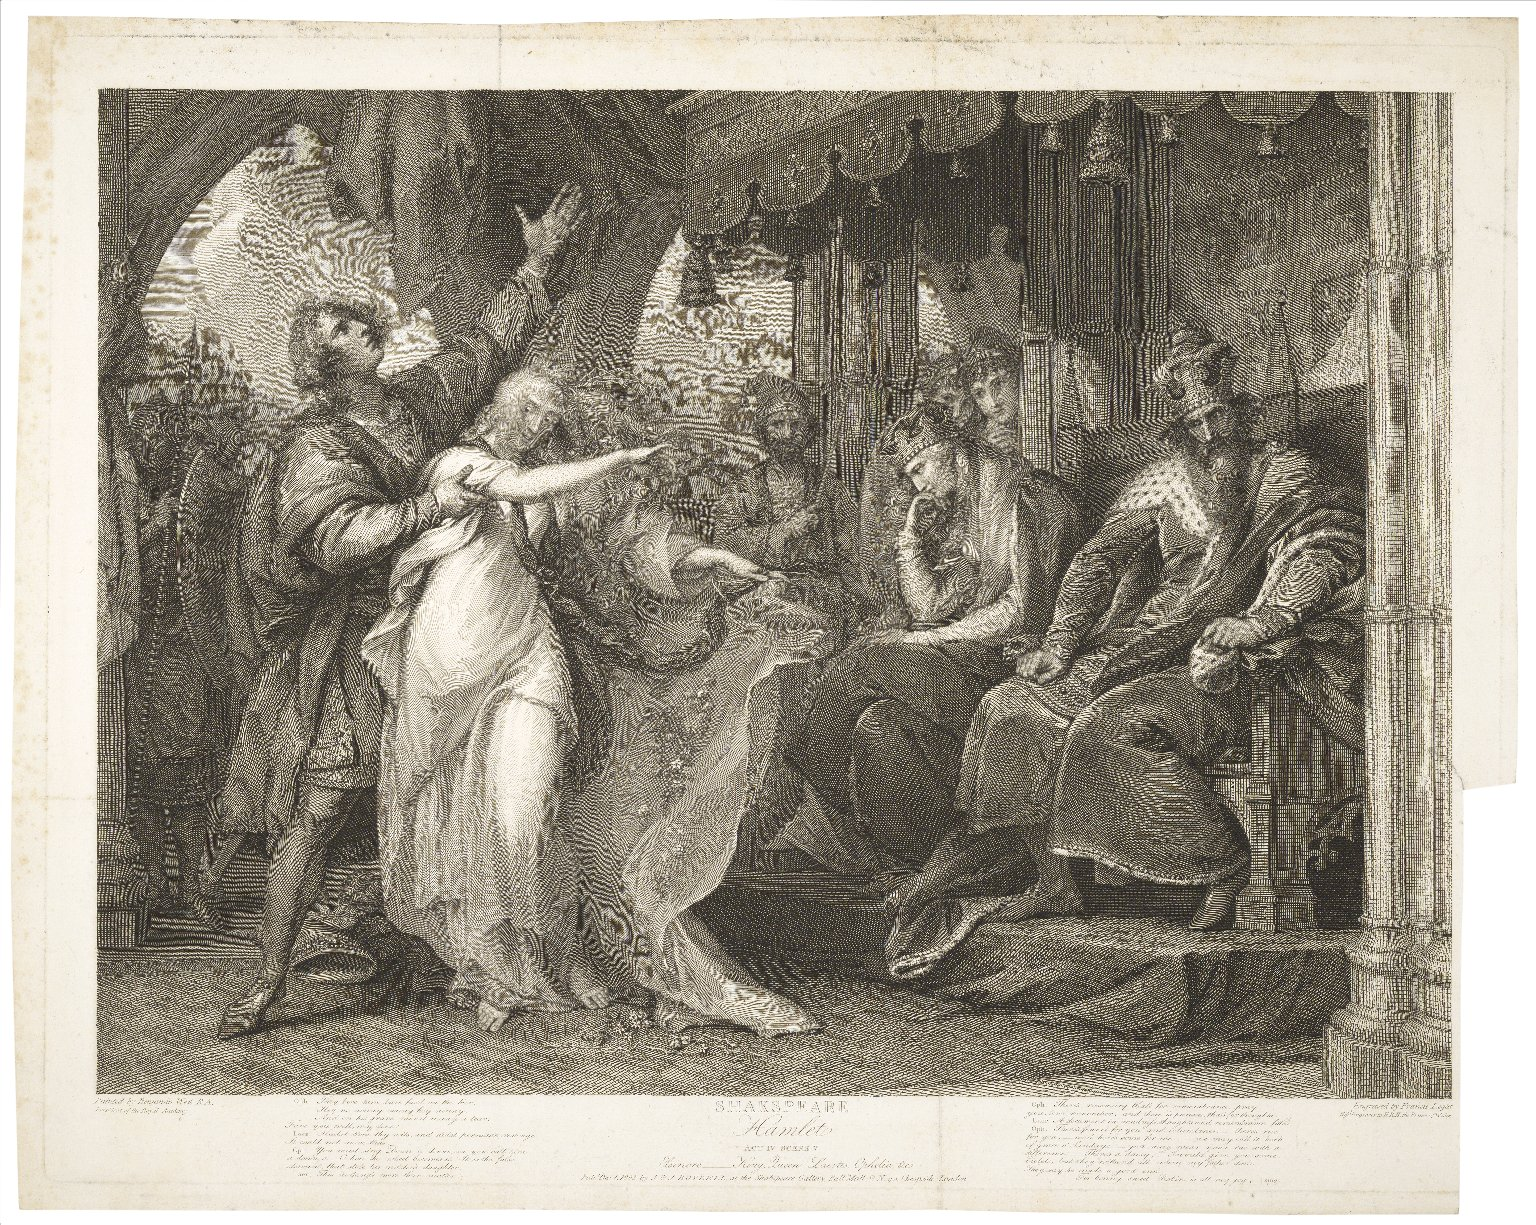 Hamlet, act IV, scene V, Elsinore-King, Queen, Laertes, Ophelia, &c. [graphic] / painted by Benjamin West ; engraved by Francis Legat.